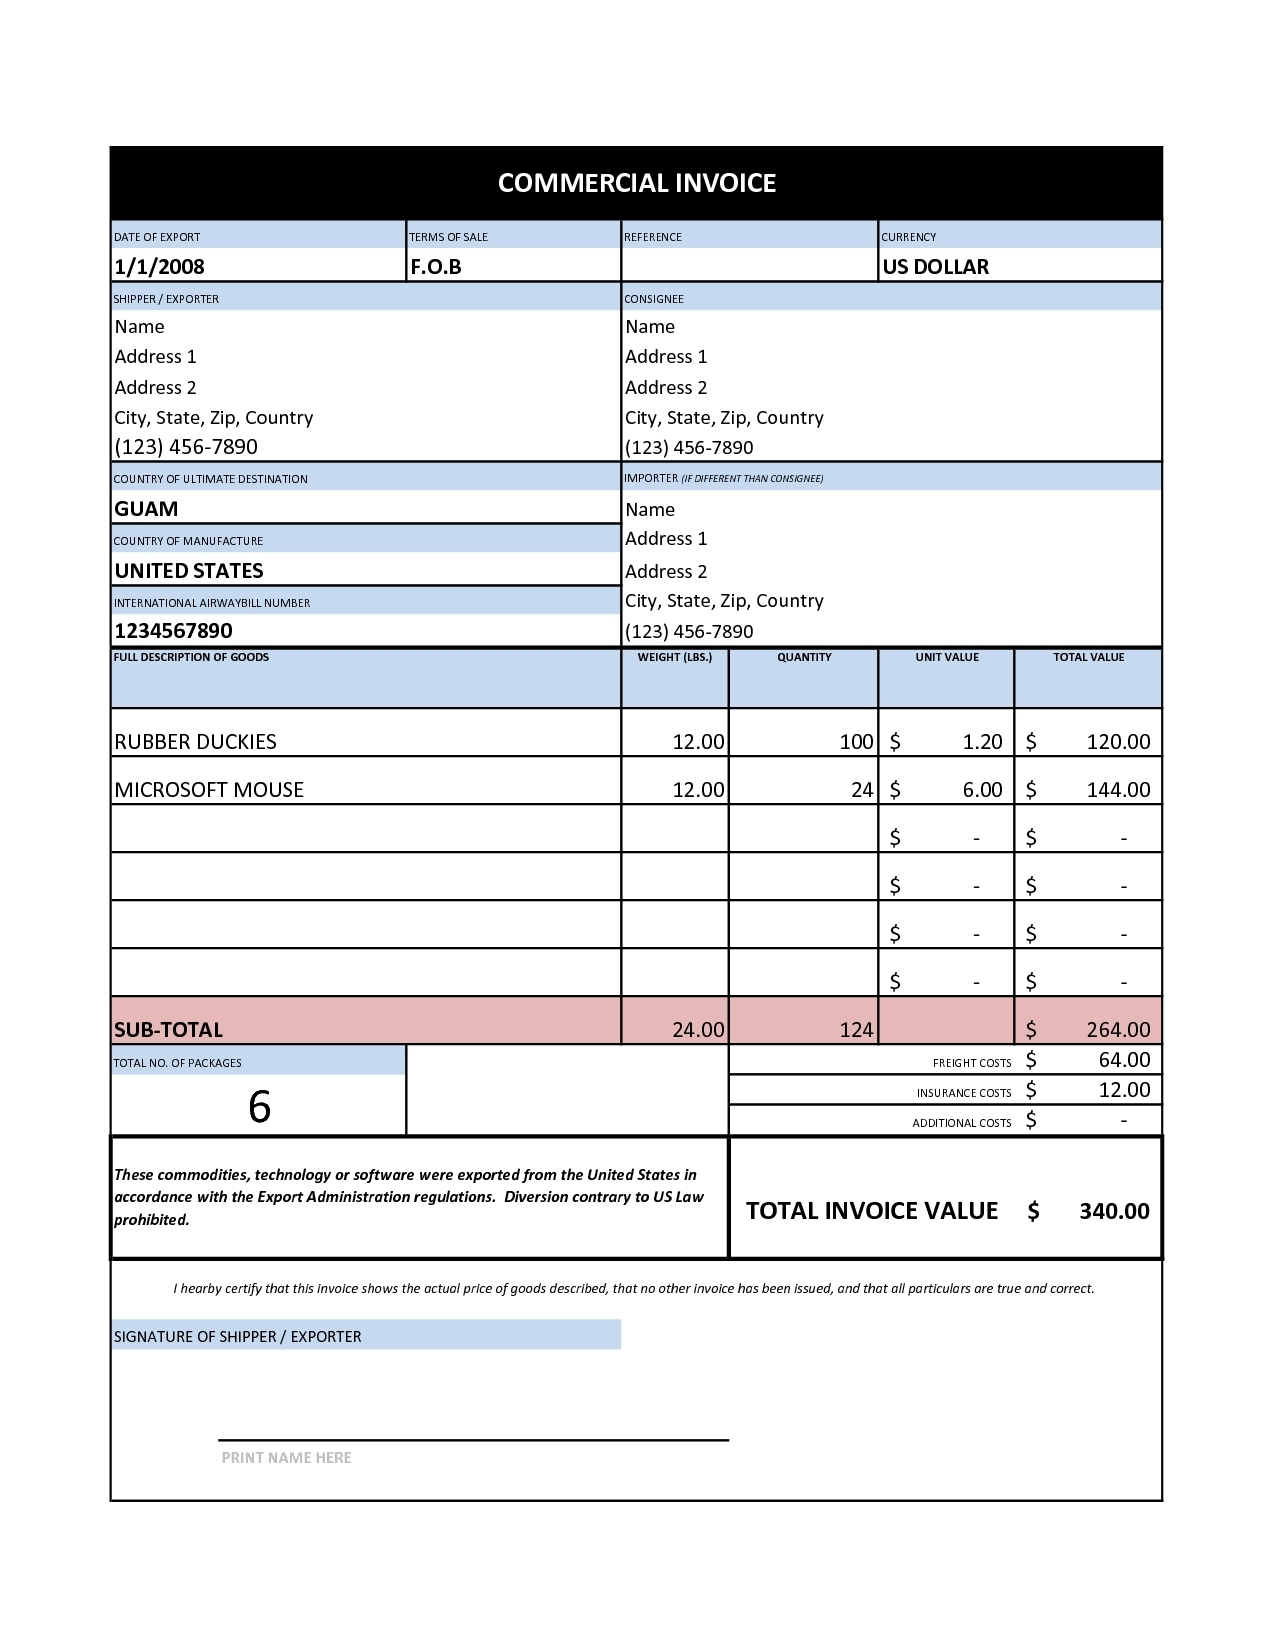 tax invoice format in excel download design invoice template tax invoice format in excel